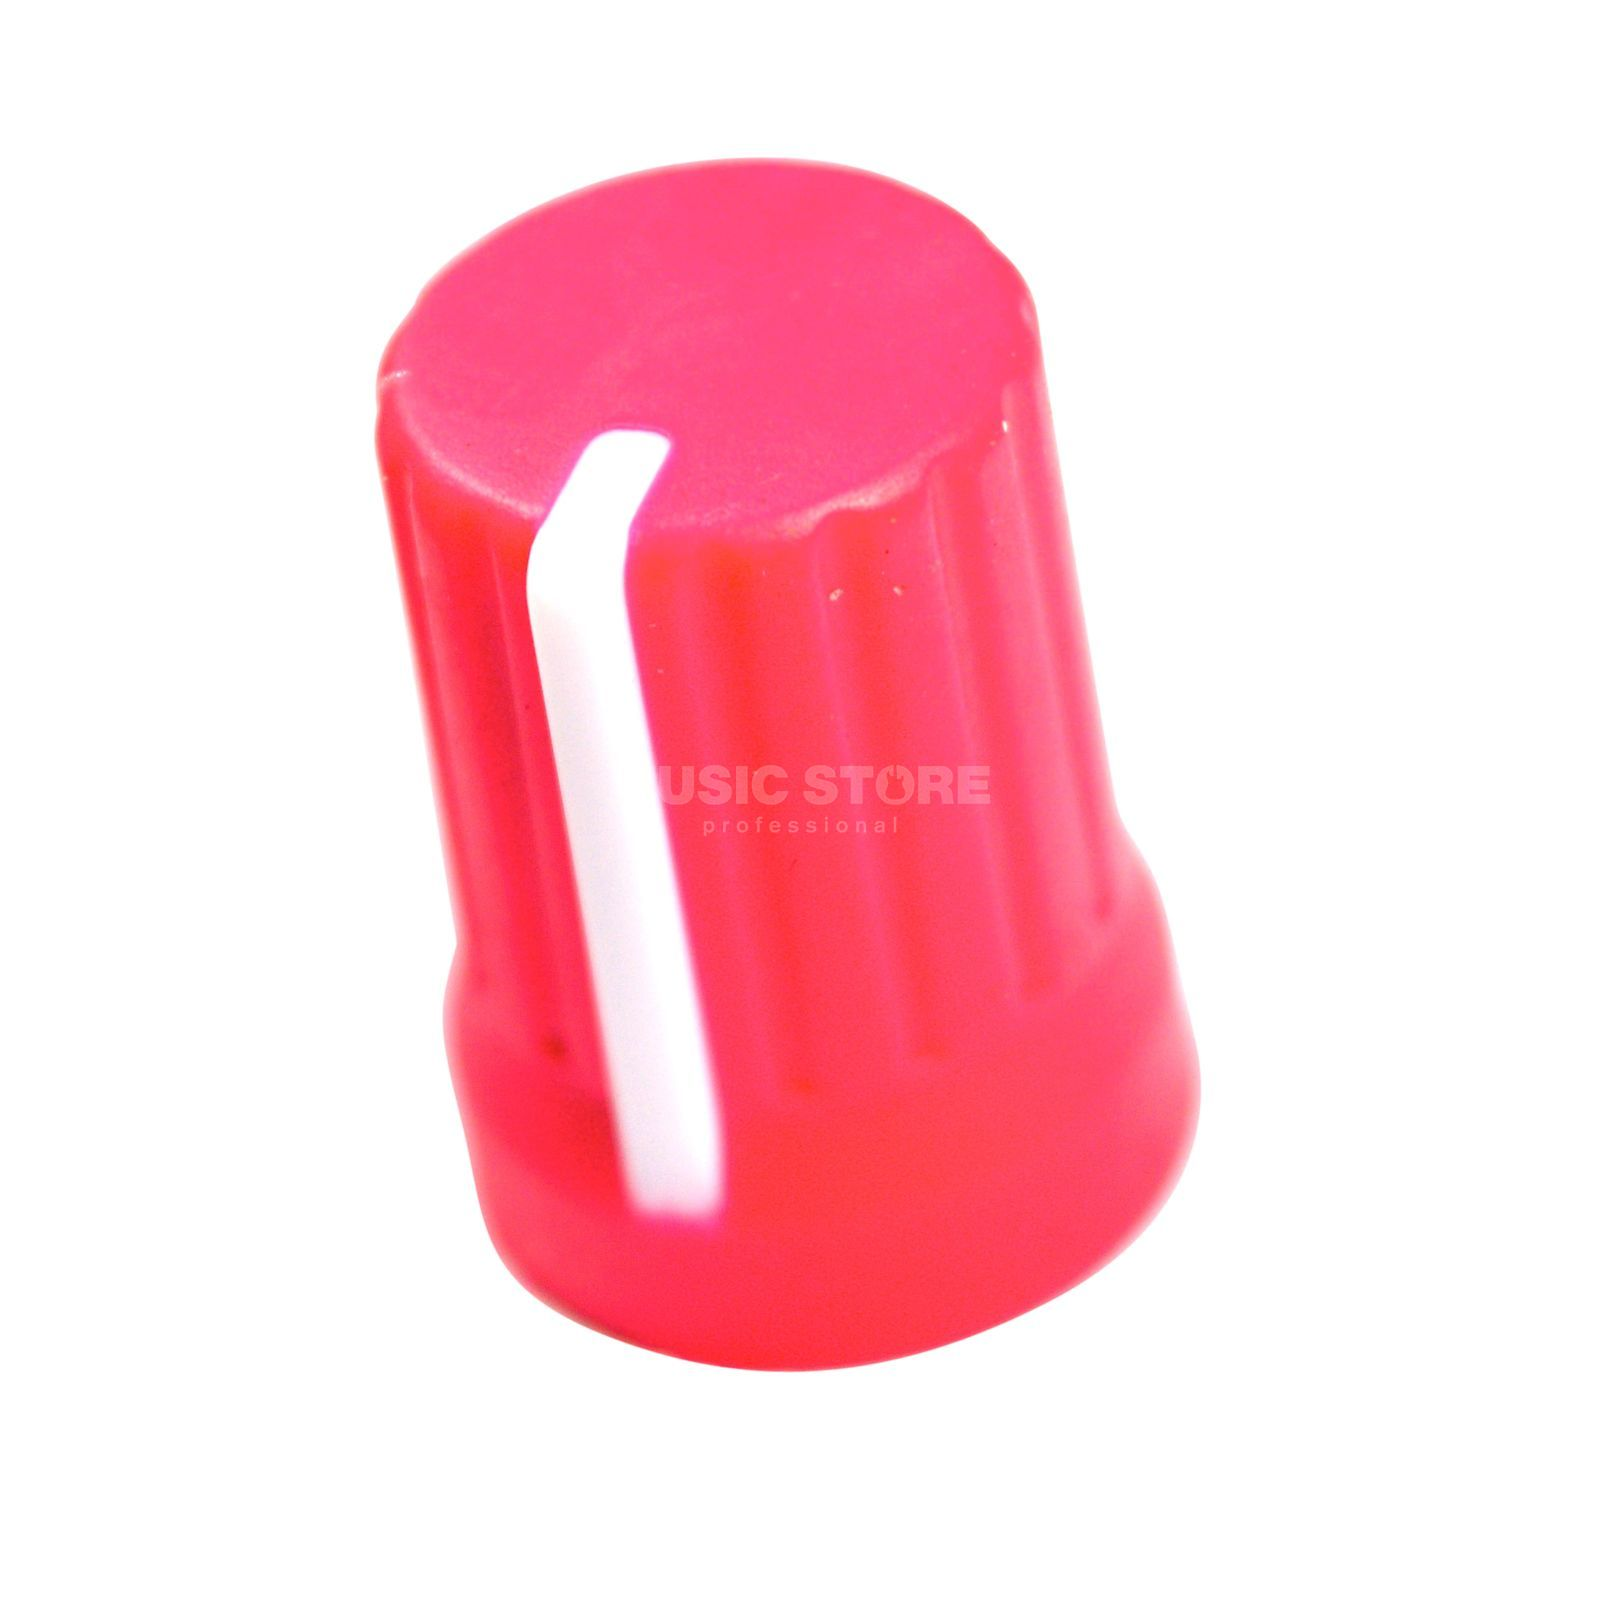 DJ TECHTOOLS Chroma Caps Superknob pink  Product Image